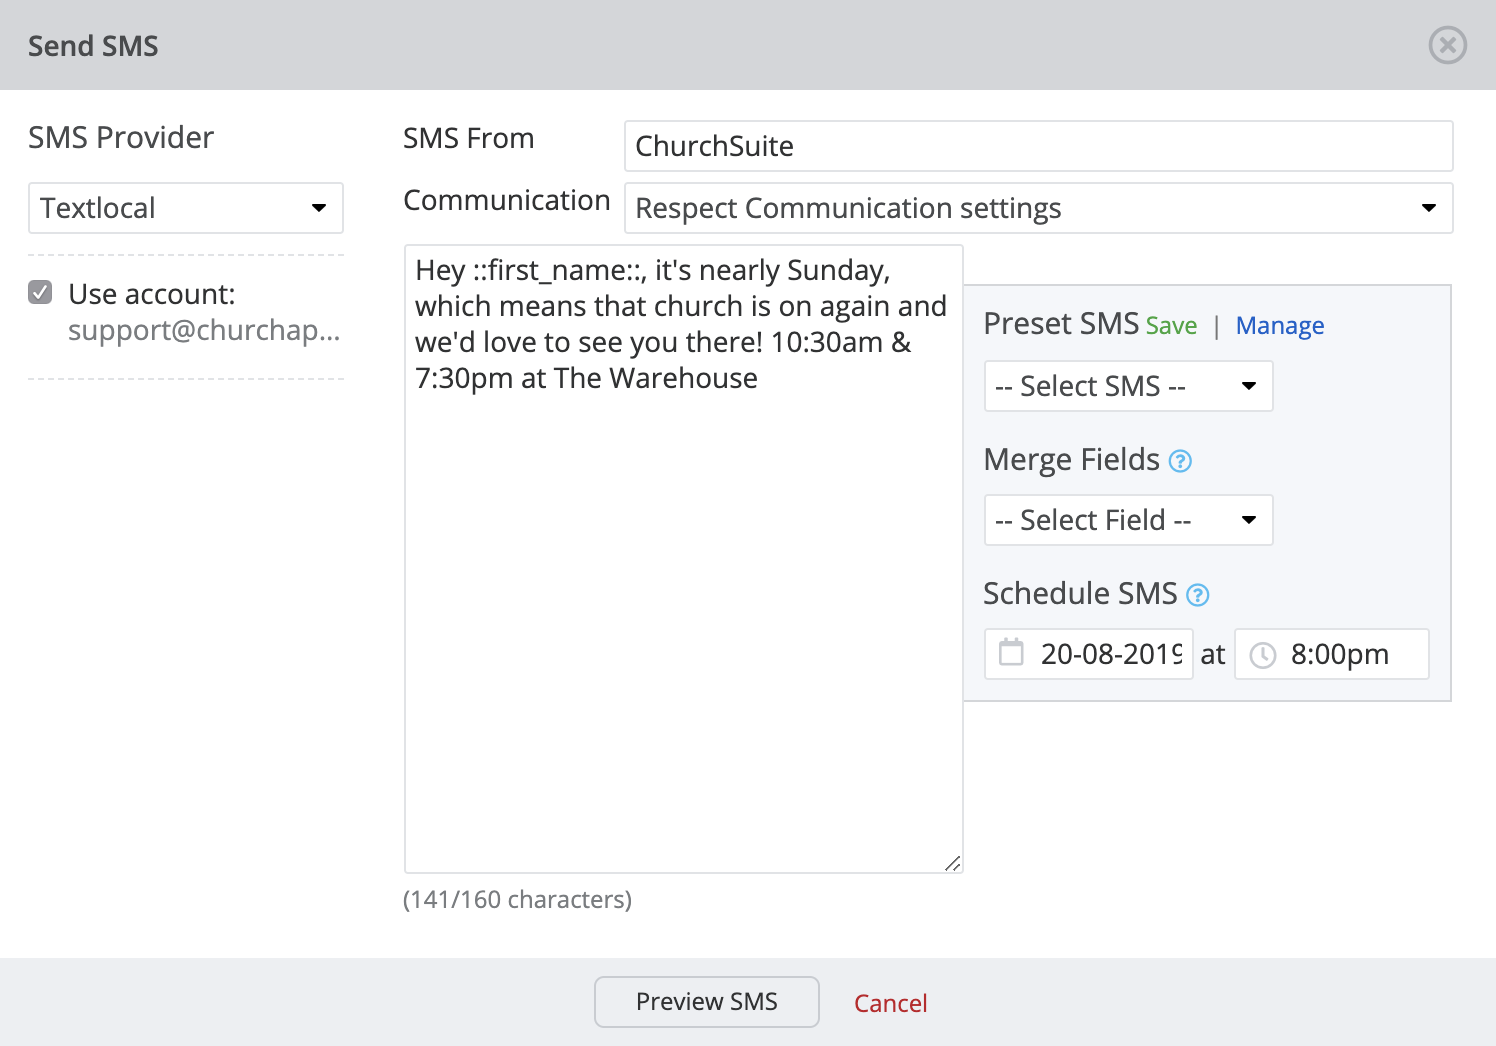 Scheduling SMS messages (and cancelling them) - ChurchSuite